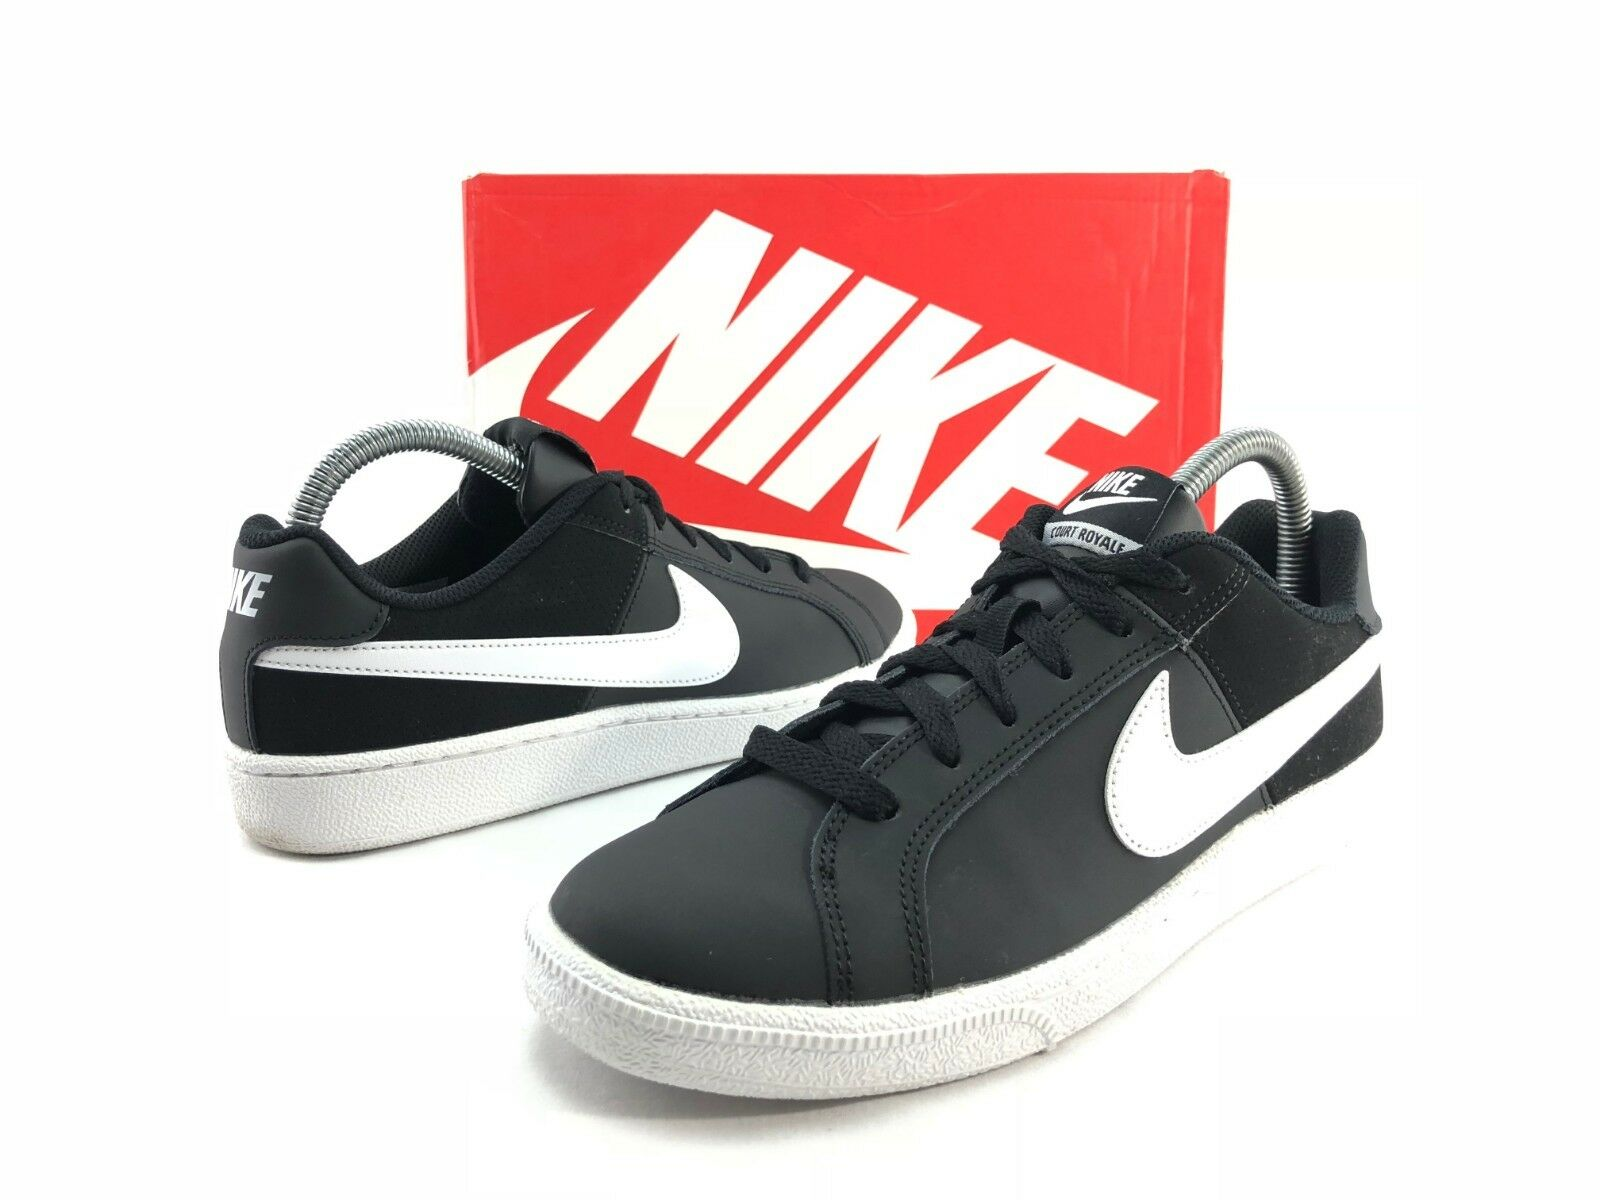 Nike Court Royal Women's Black White Athletic Sneakers Fashion shoes US 9.5 C450